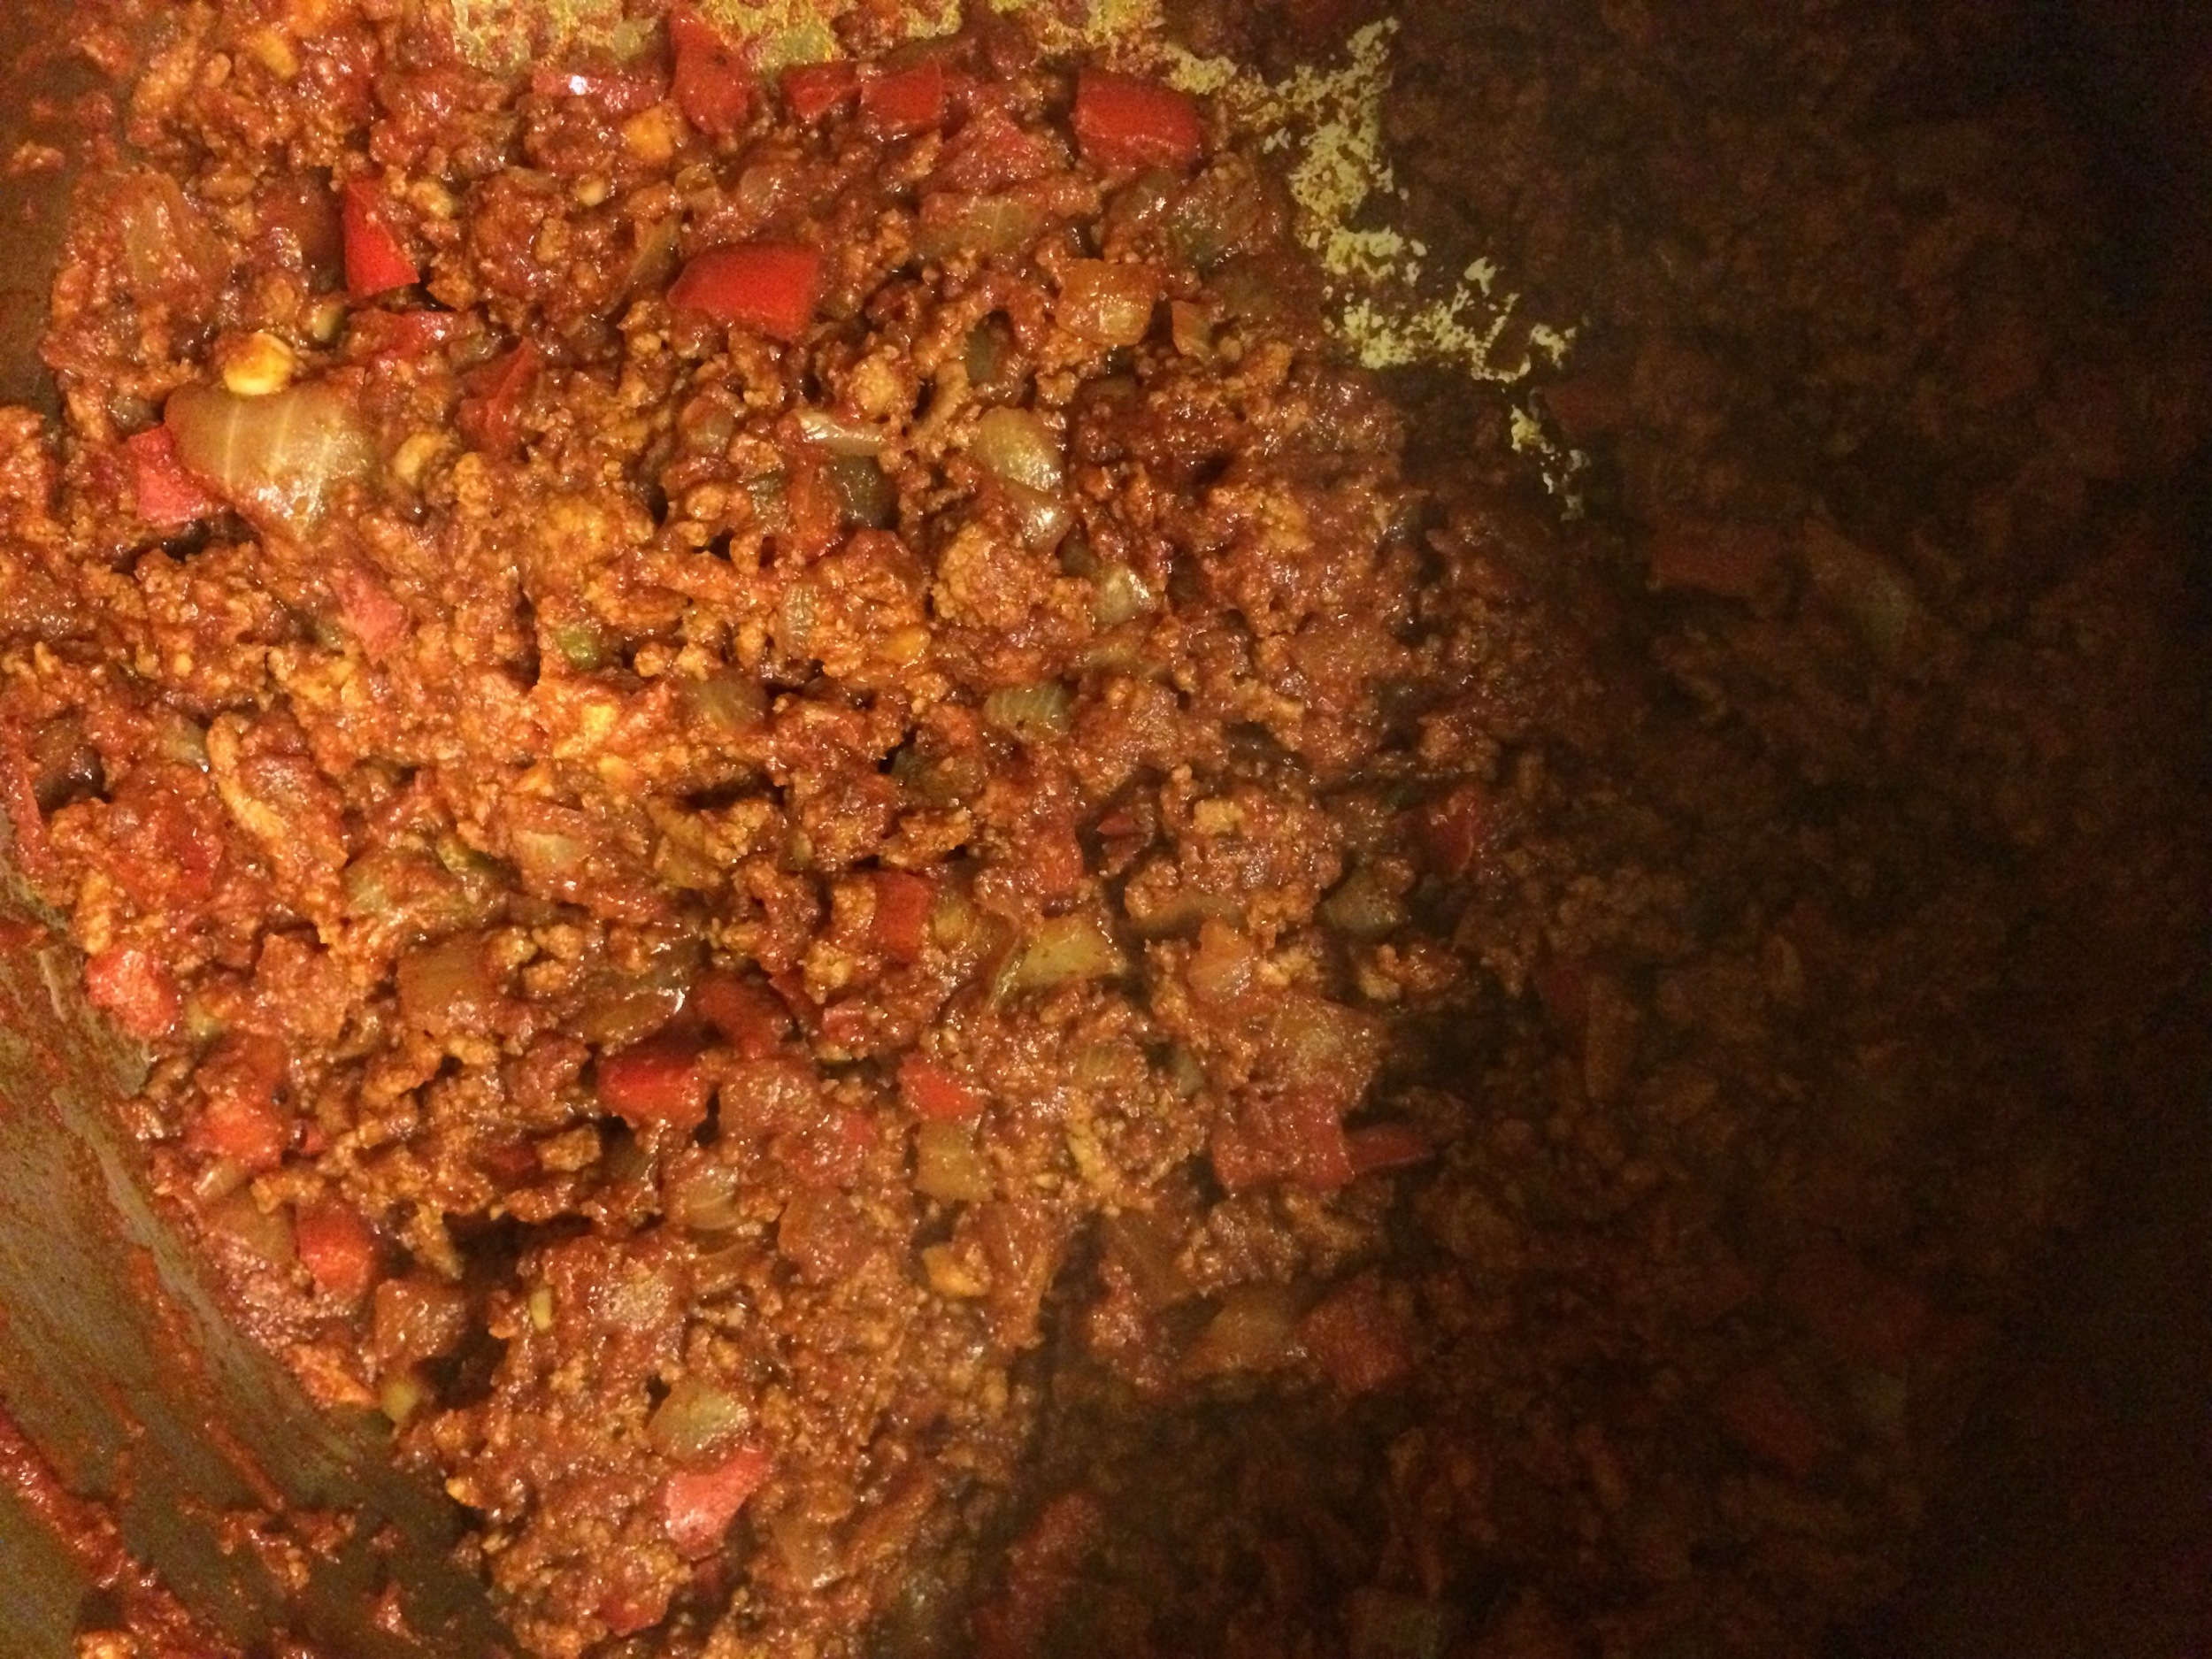 After adding spices & tomato paste